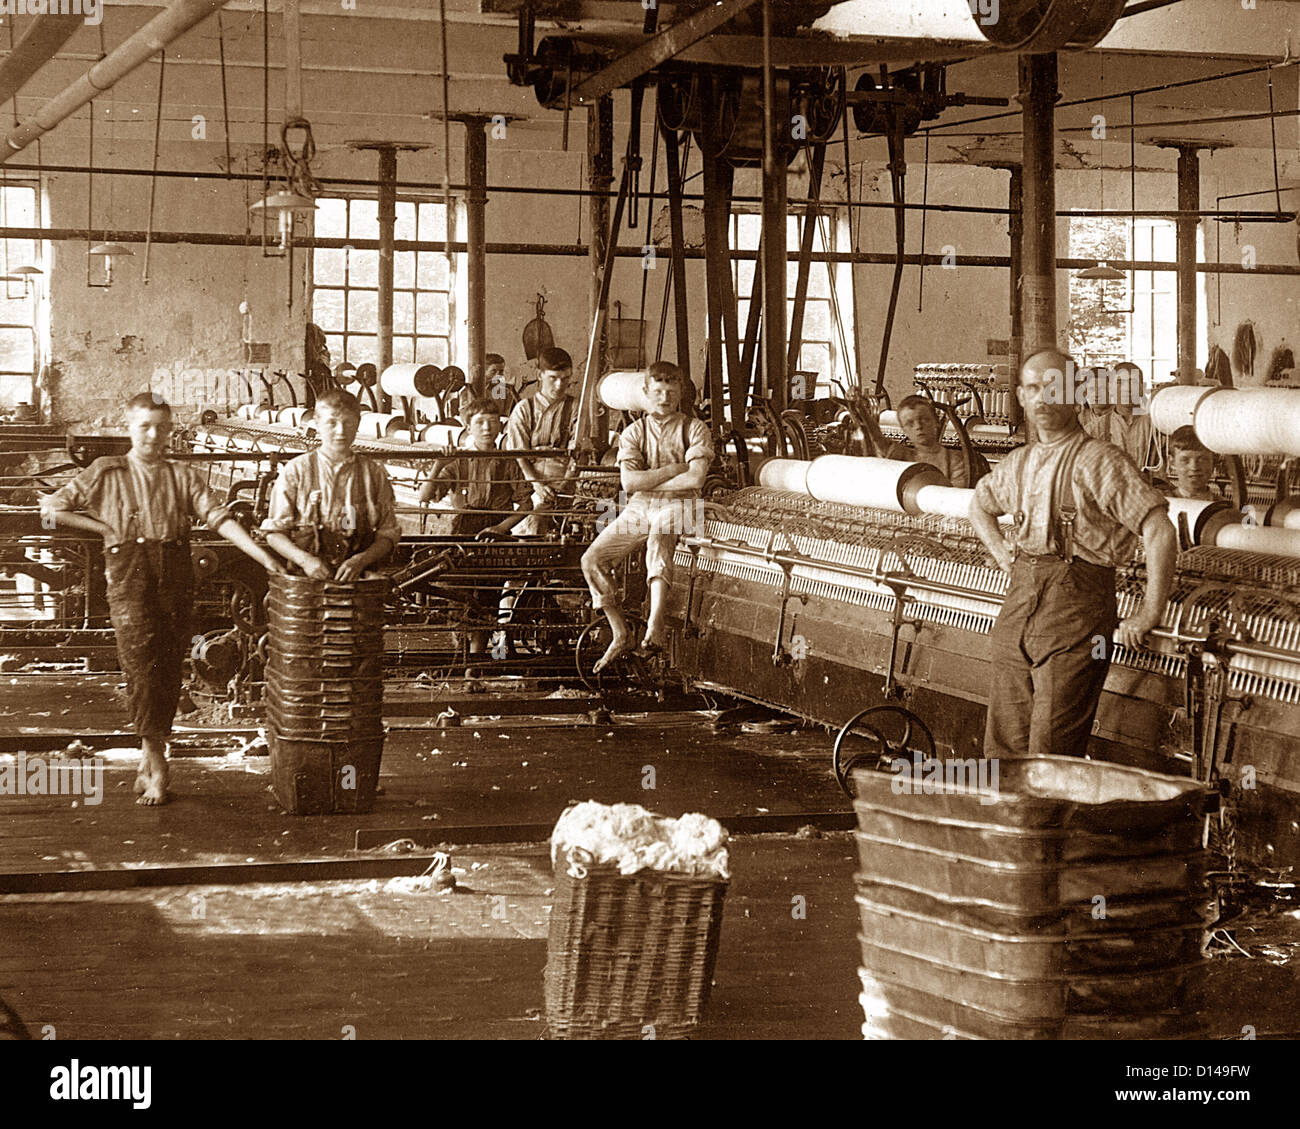 Lancashire Spinning Mill Victorian period - Stock Image